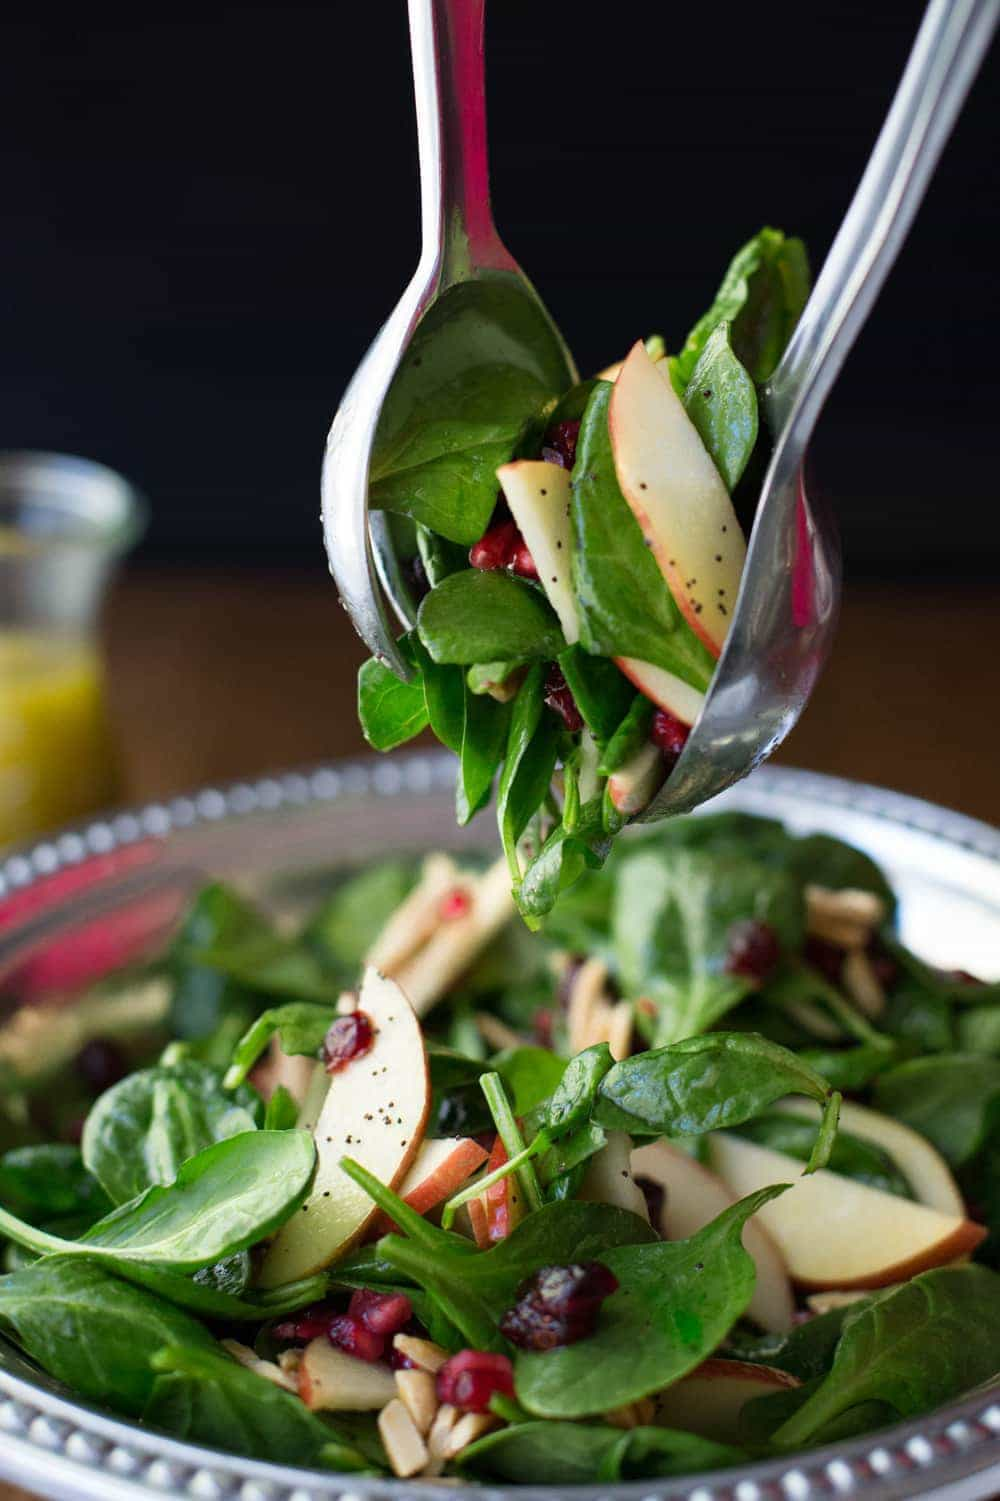 Apple Cranberry Spinach Salad - an insanely delicious, super healthy salad - perfect for any fall/holiday get together! http://thecafesucrefarine.com/2013/11/the-easy-way-to-remove-pomegranate-seeds/